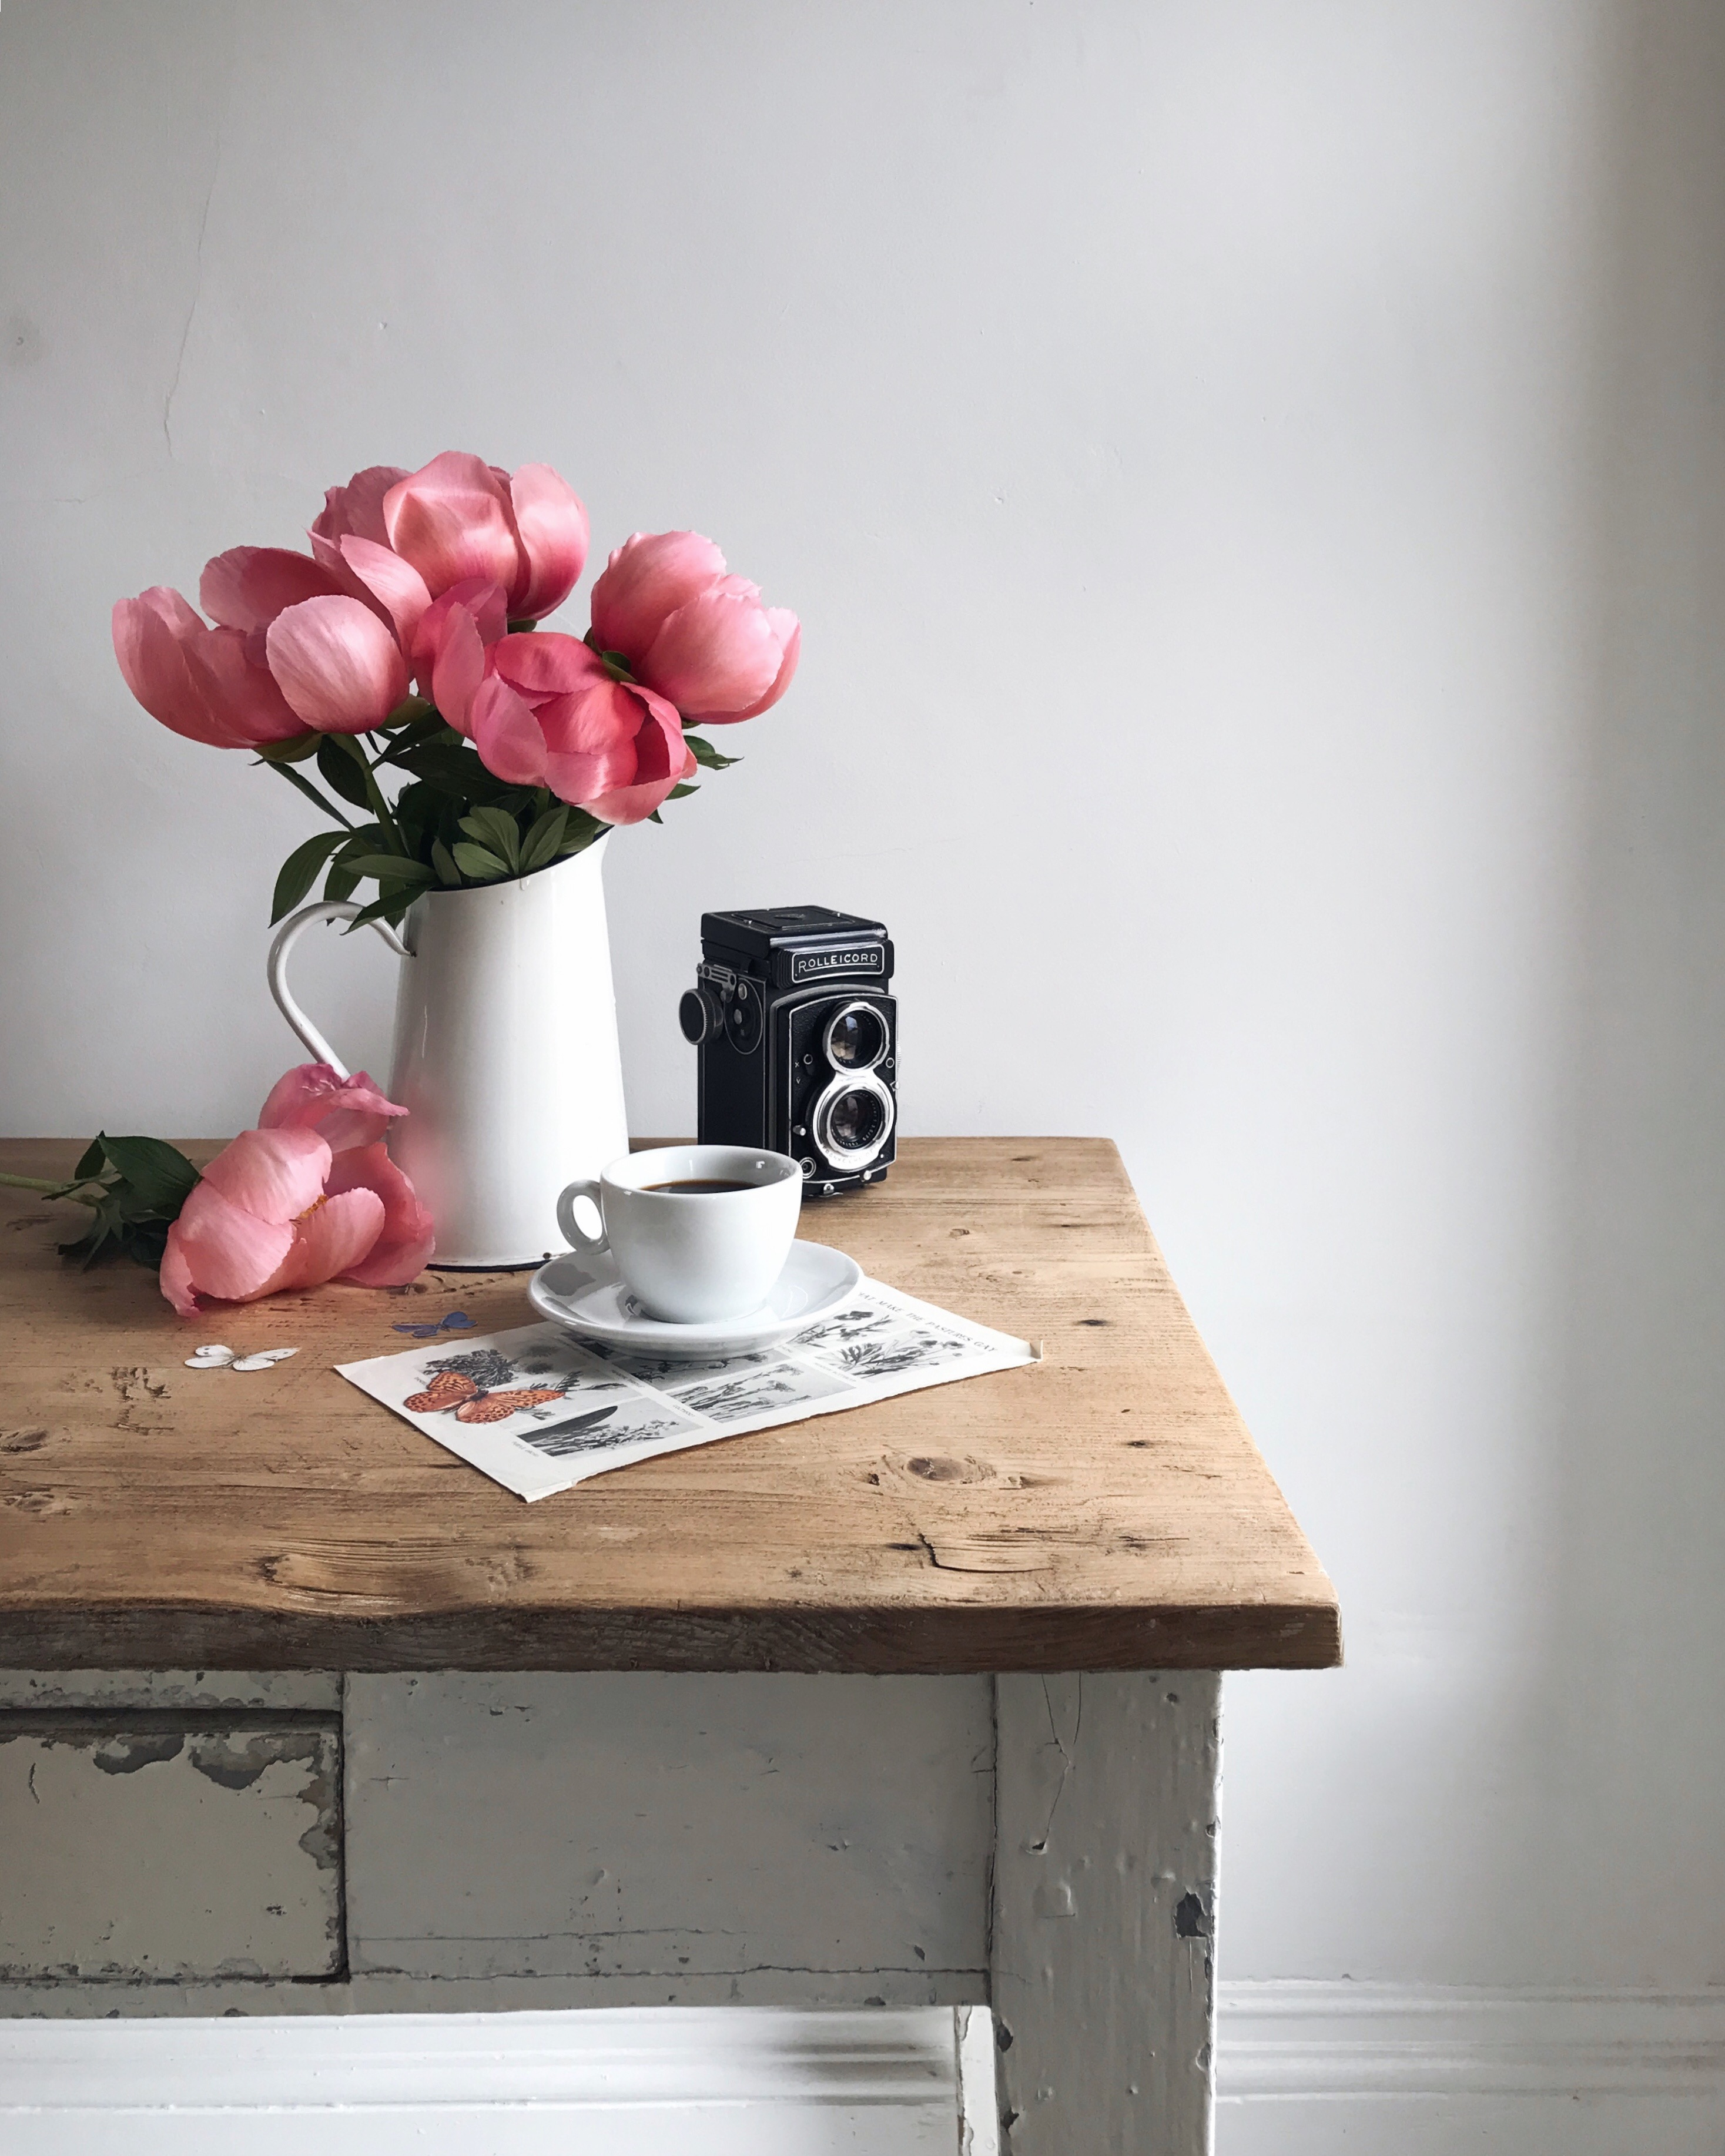 Peonies and coffee - Instagram clichés